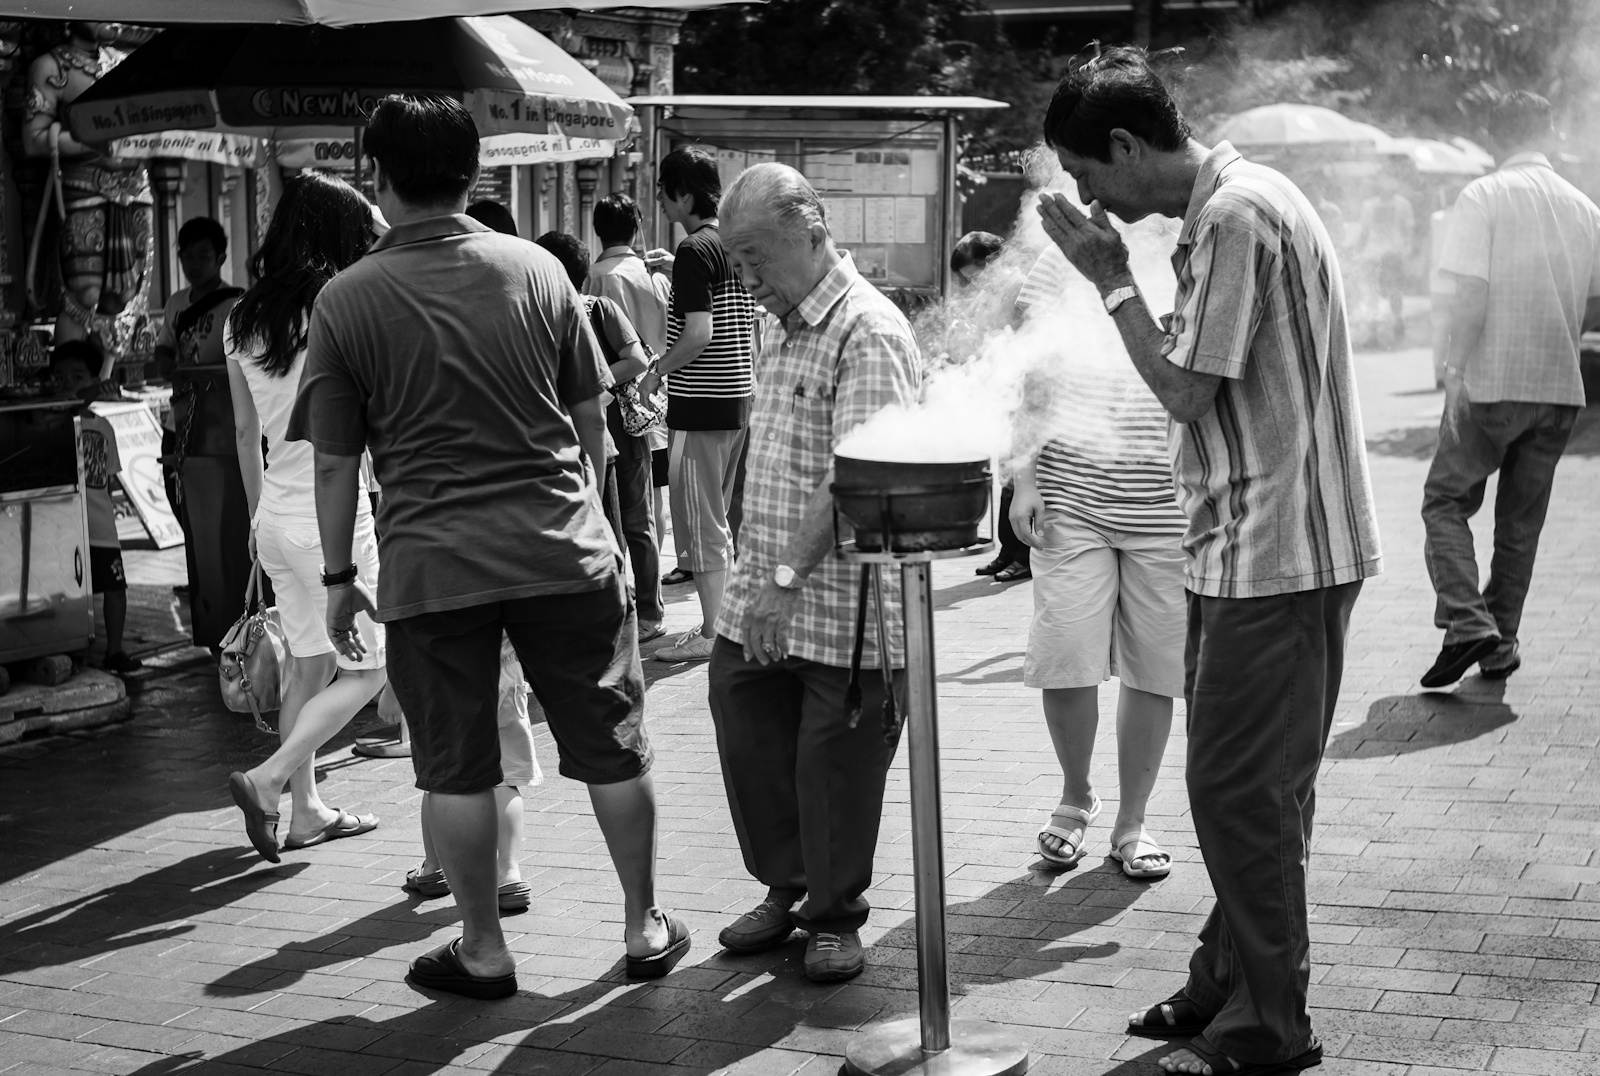 Street photography - A man praying in Chinatown